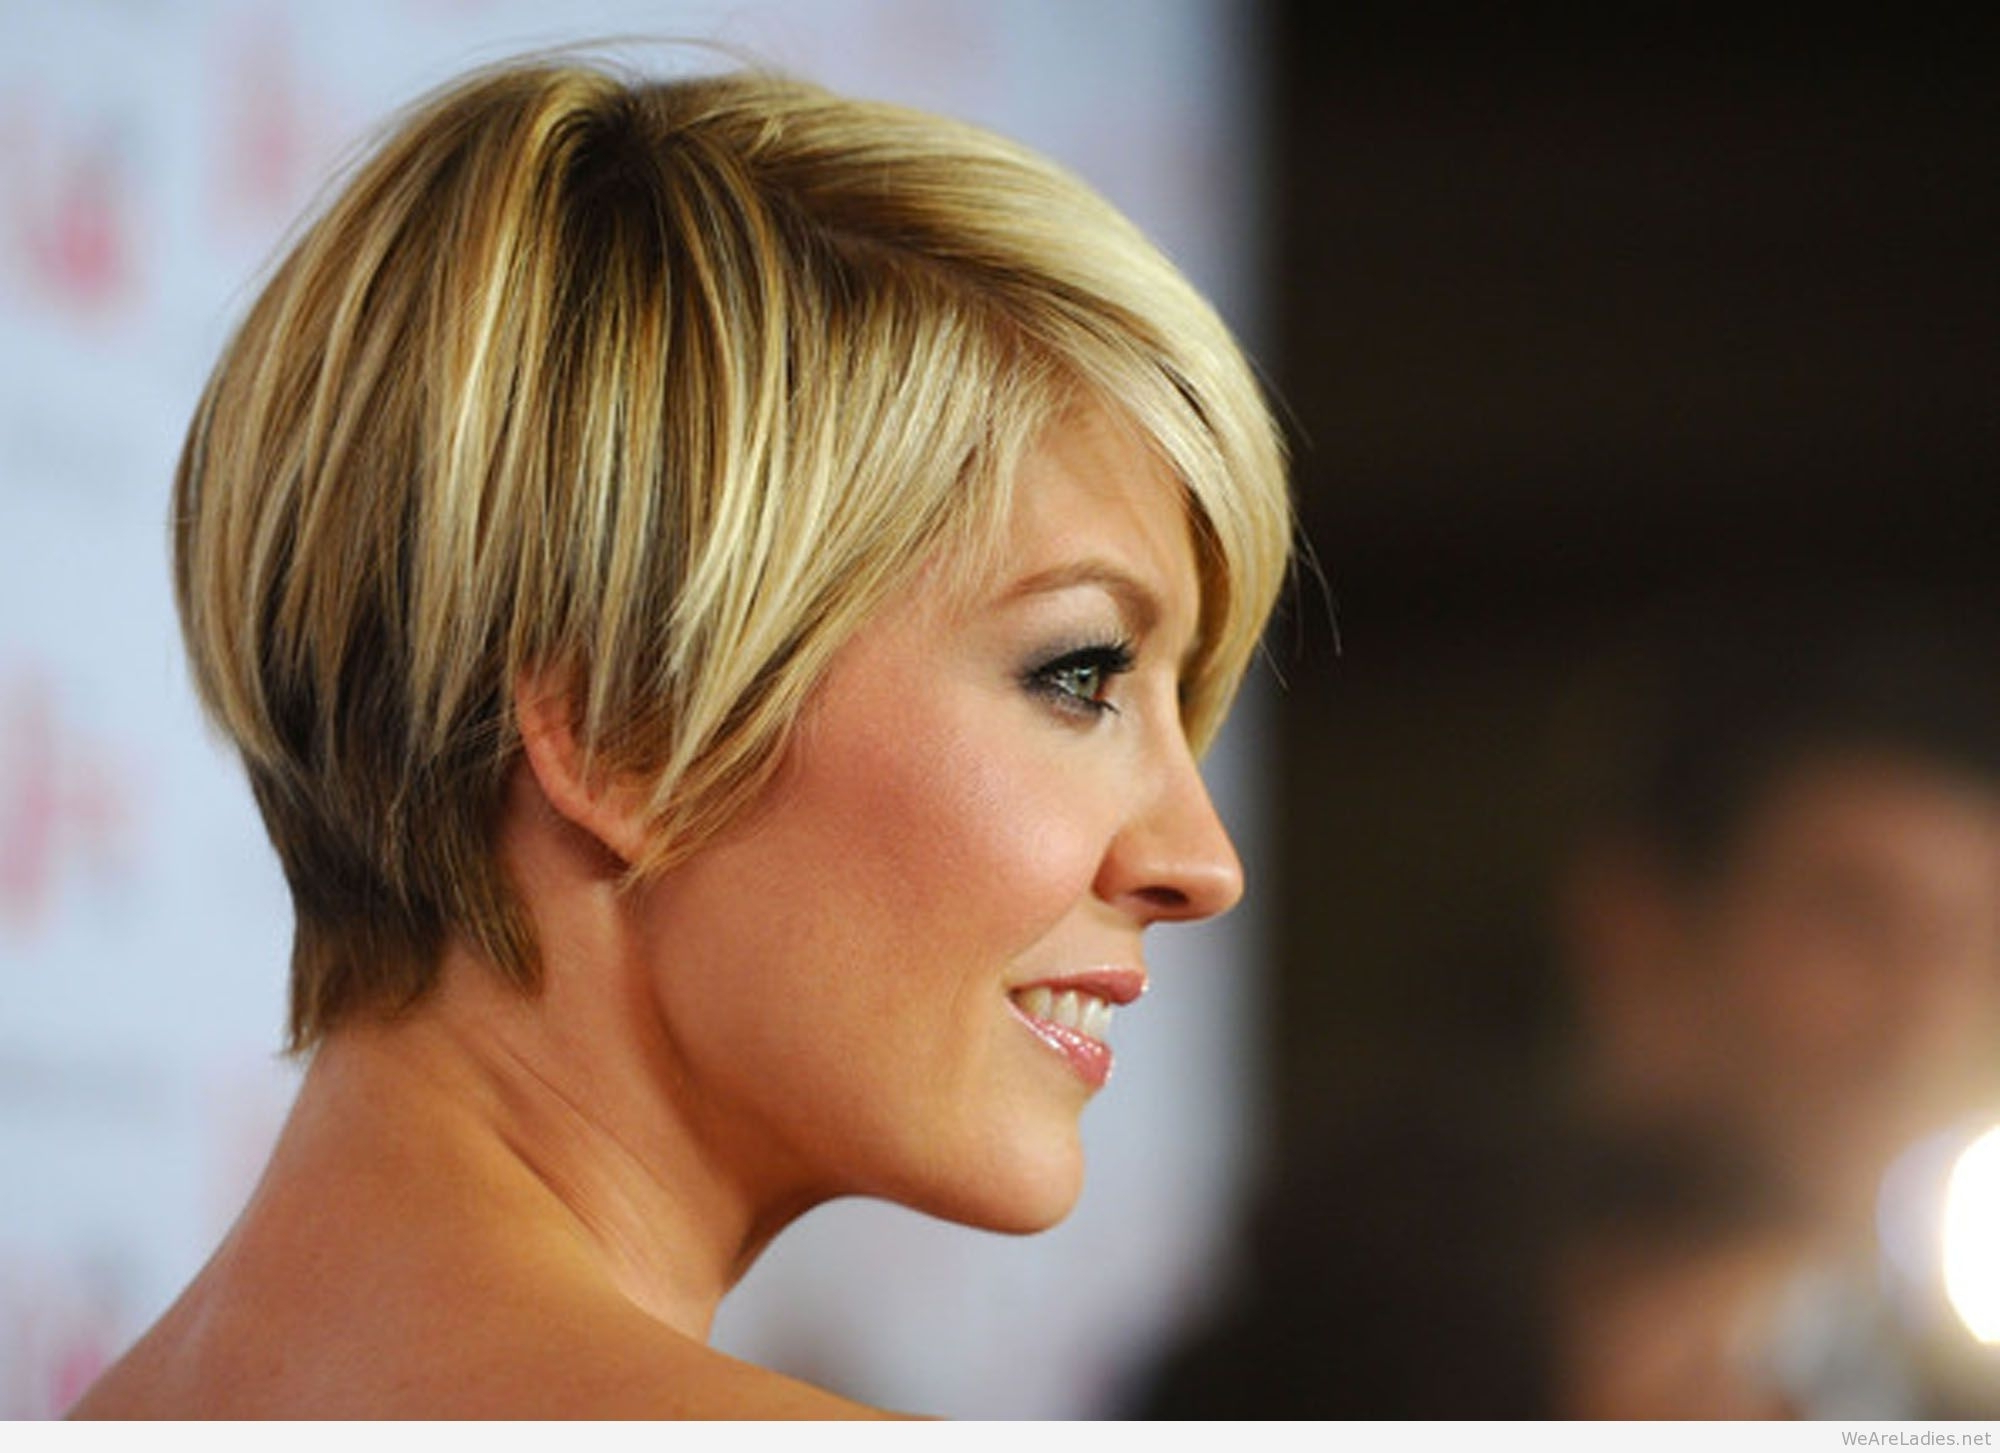 Stunning Short Hairstyles For Women With Thin Hair Contemporary Throughout Short Haircuts For Blondes With Thin Hair (View 24 of 25)